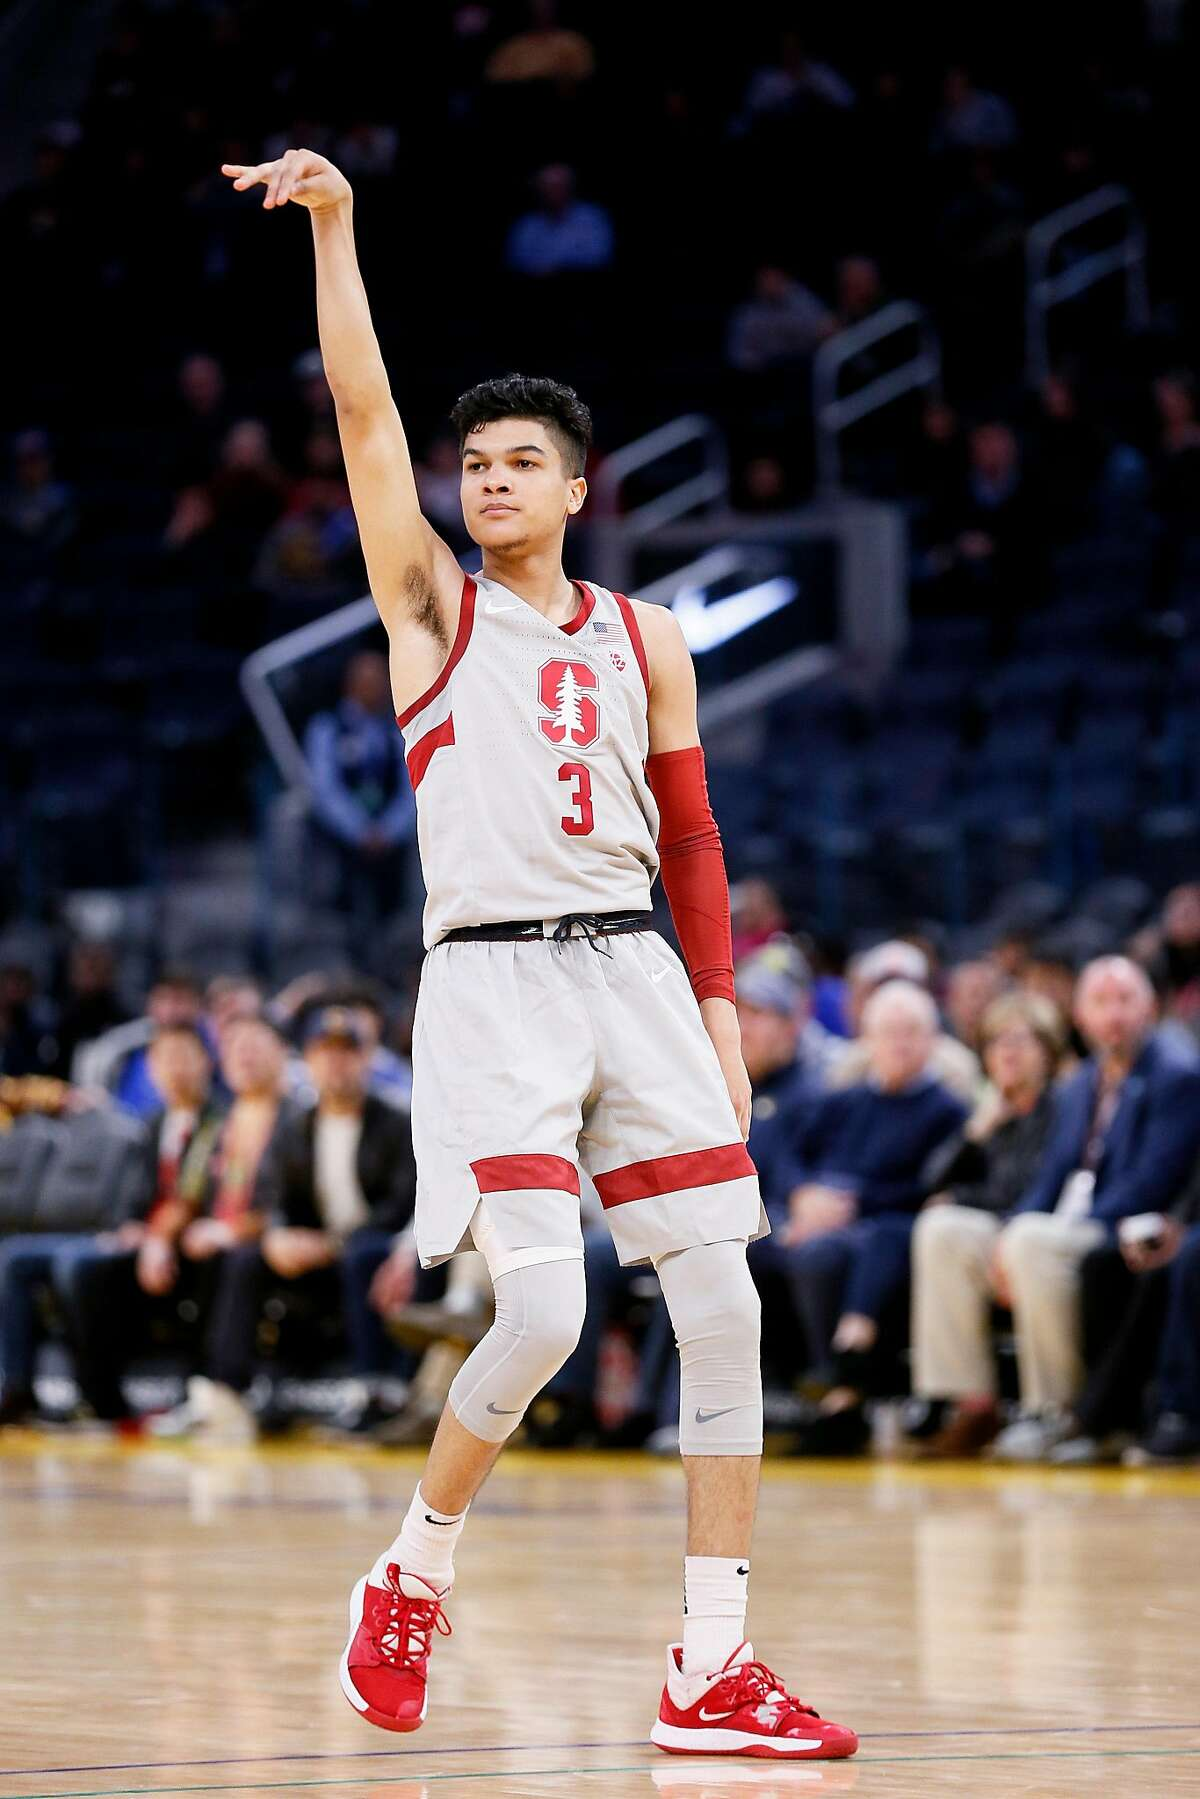 Stanford Cardinal guard Tyrell Terry (3) after scoring a three-point shot late in the second half against the San Diego Toreros in Session 1 of the Al Attles Classic at Chase Center on Saturday, Dec. 21, 2019, in San Francisco, Calif.